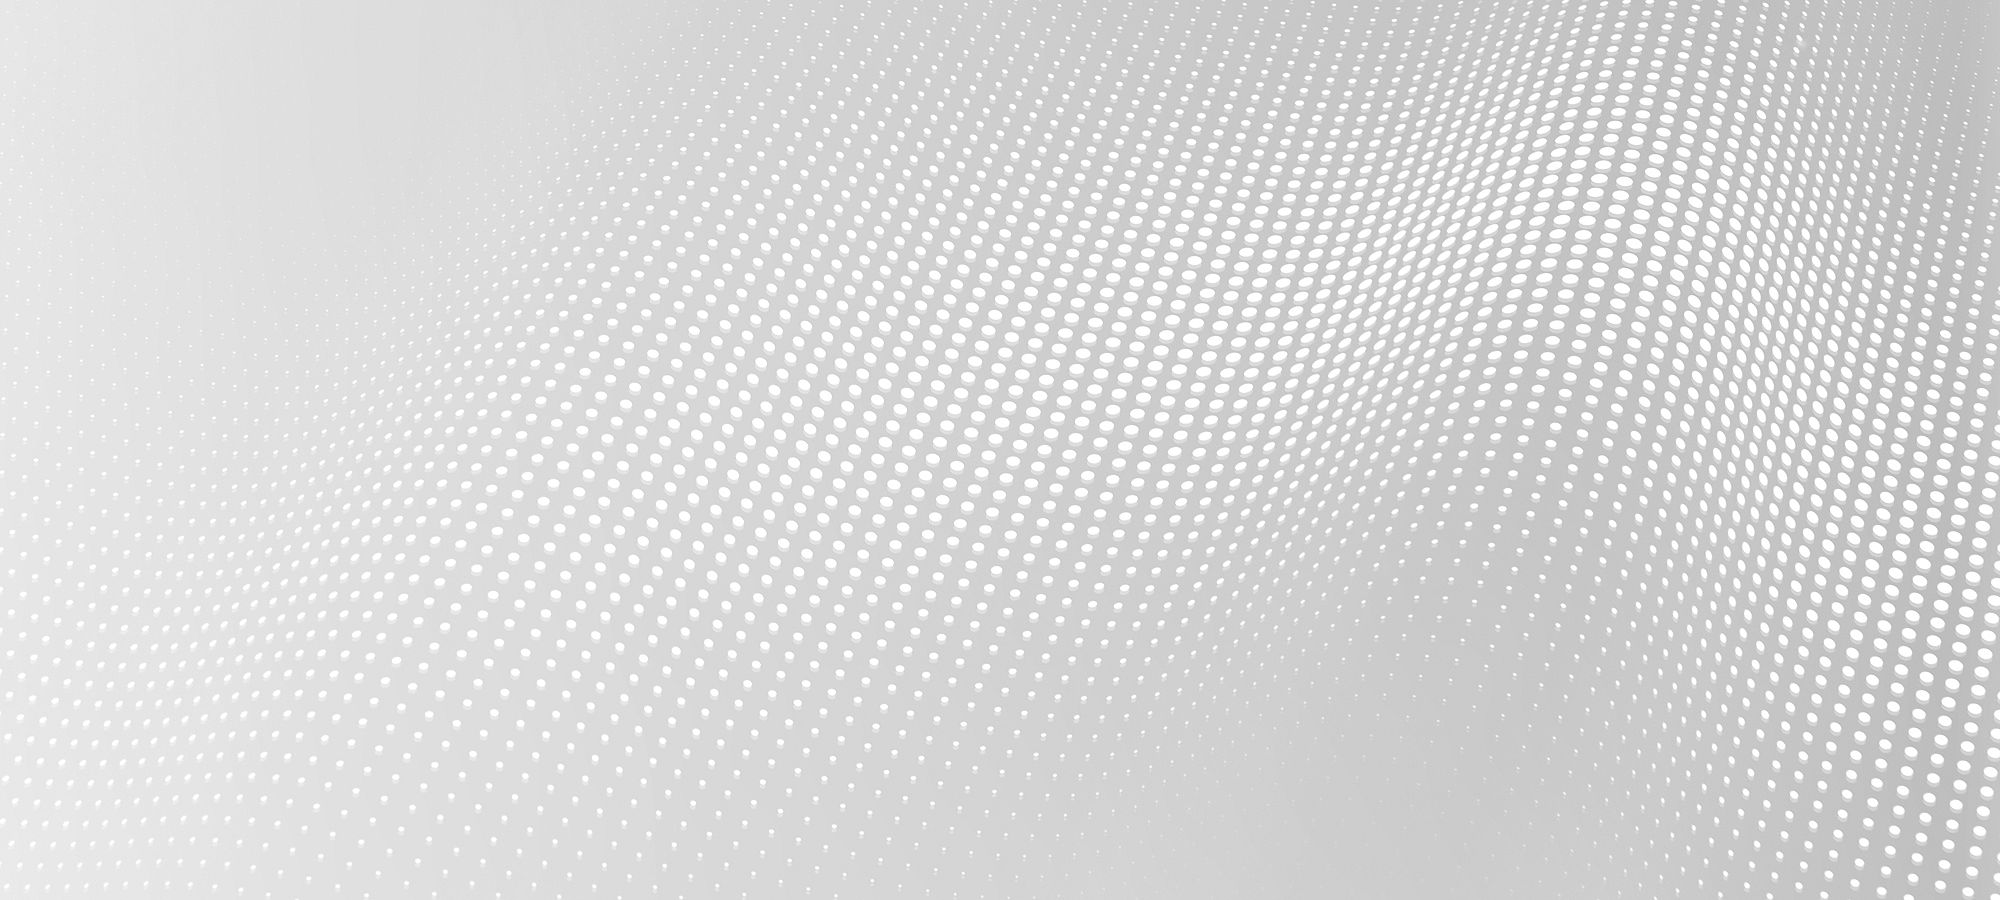 Wave pattern of white dots on a gray background